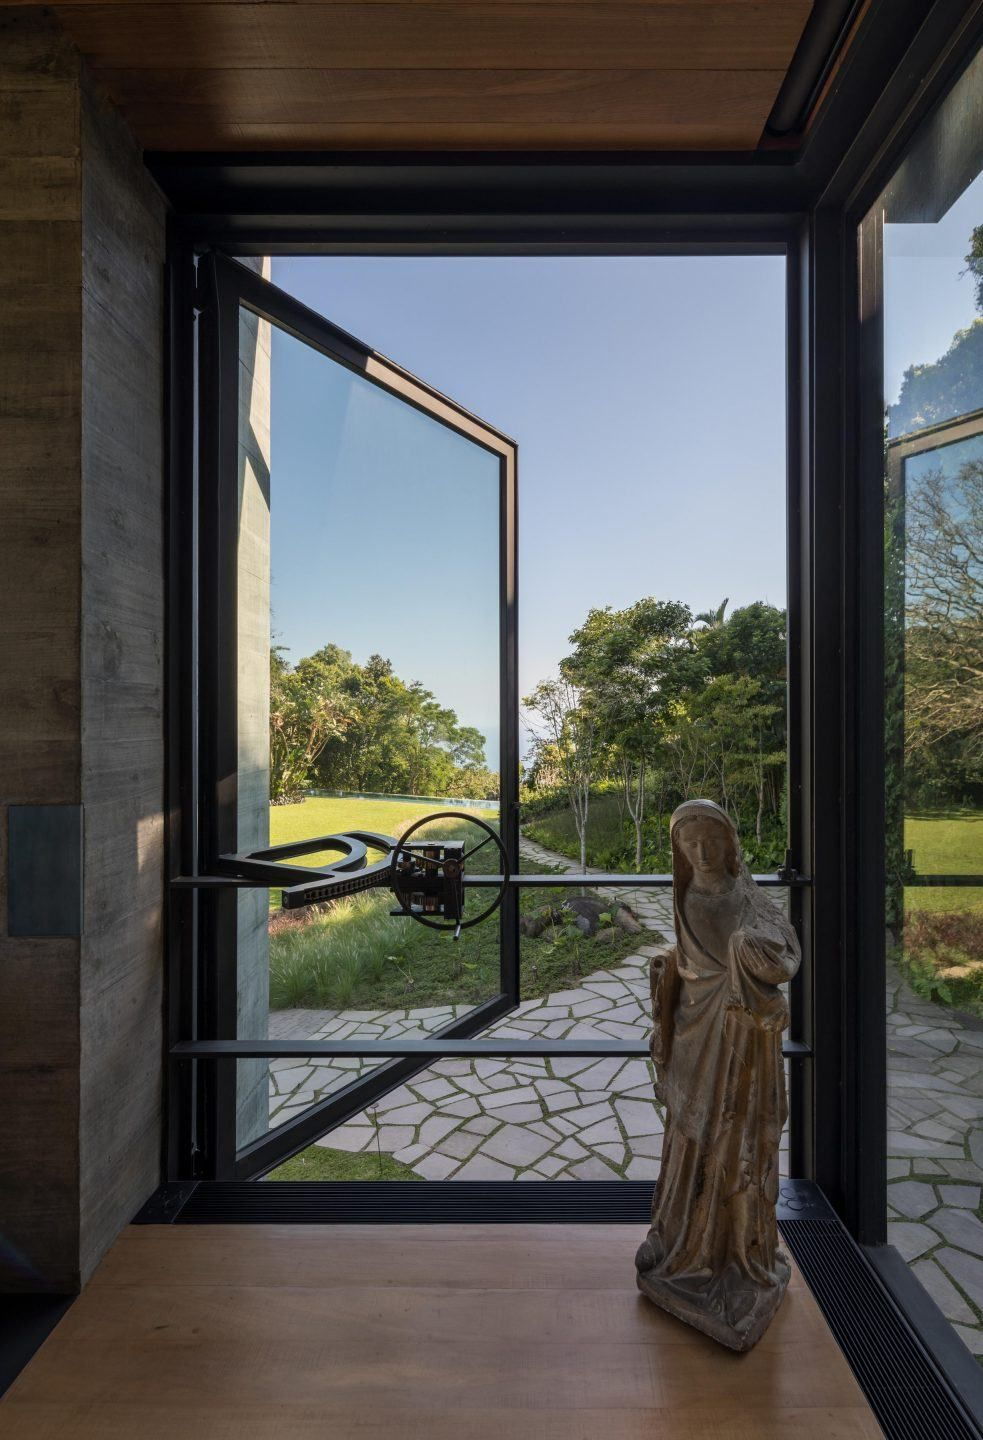 The primary materials used throughout the house are stainless steel, glass, concrete and wood